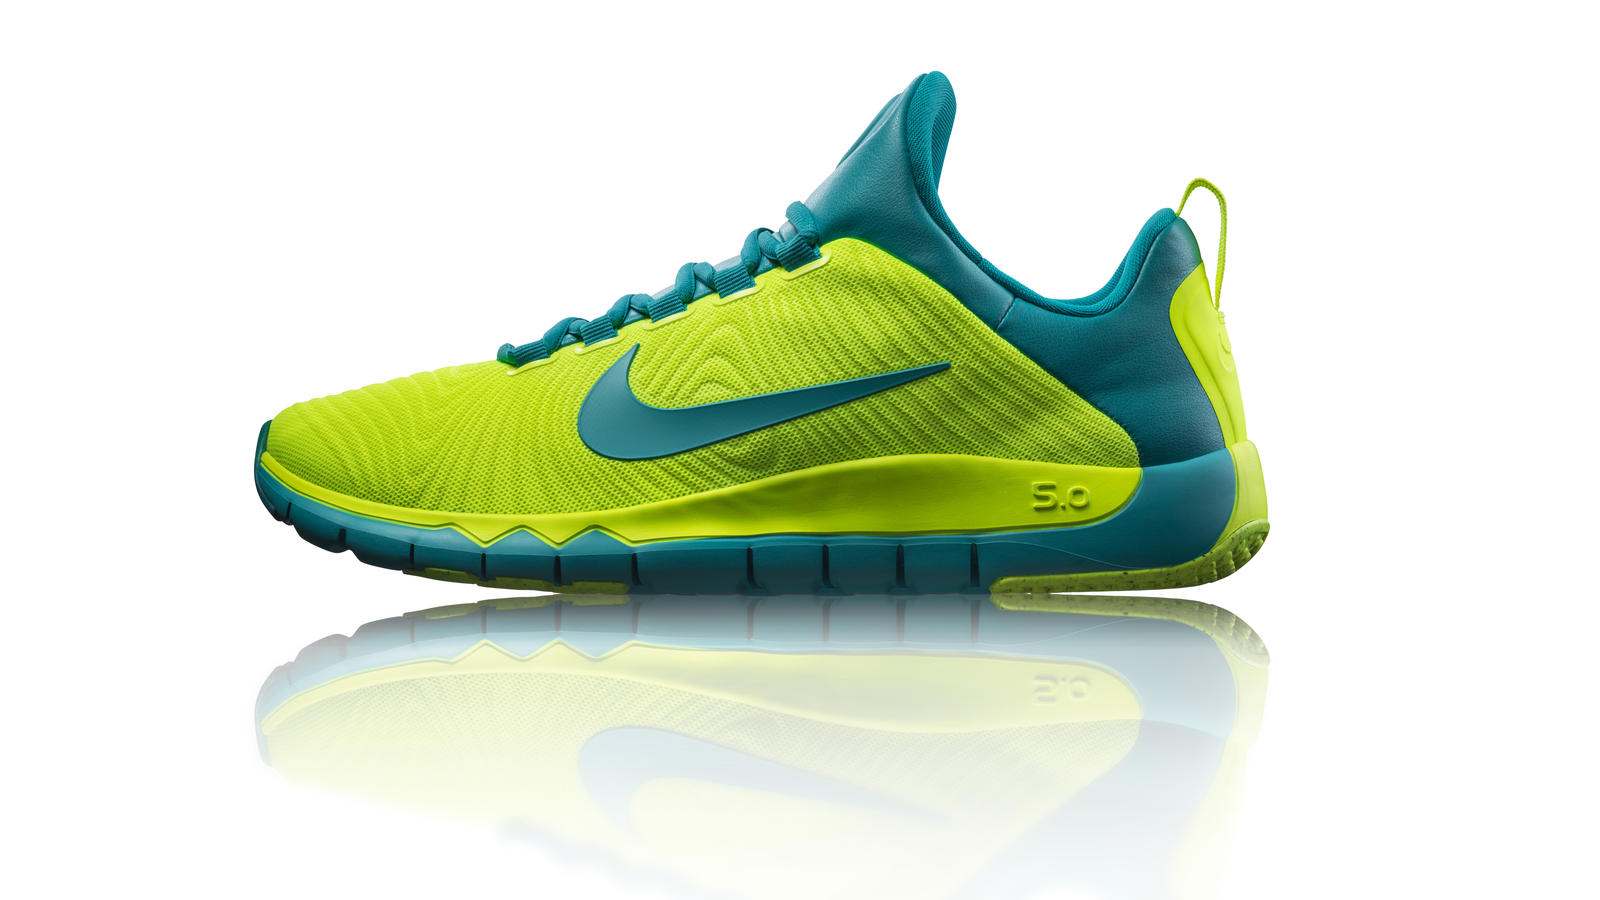 Introducing the new Nike Free Trainer 5